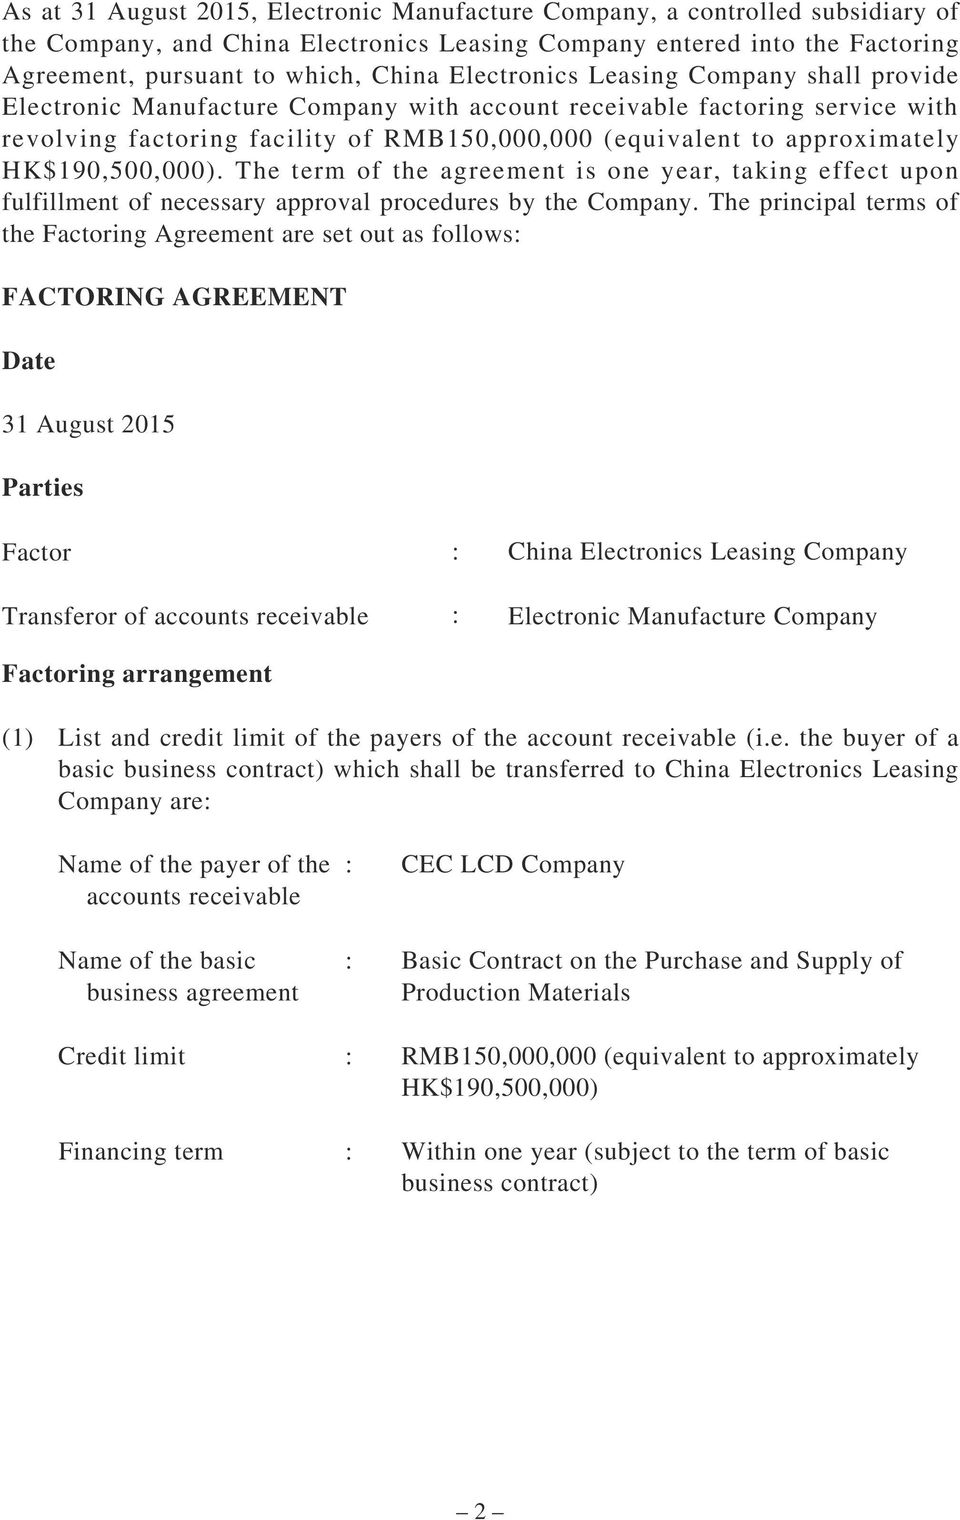 HK$190,500,000). The term of the agreement is one year, taking effect upon fulfillment of necessary approval procedures by the Company.